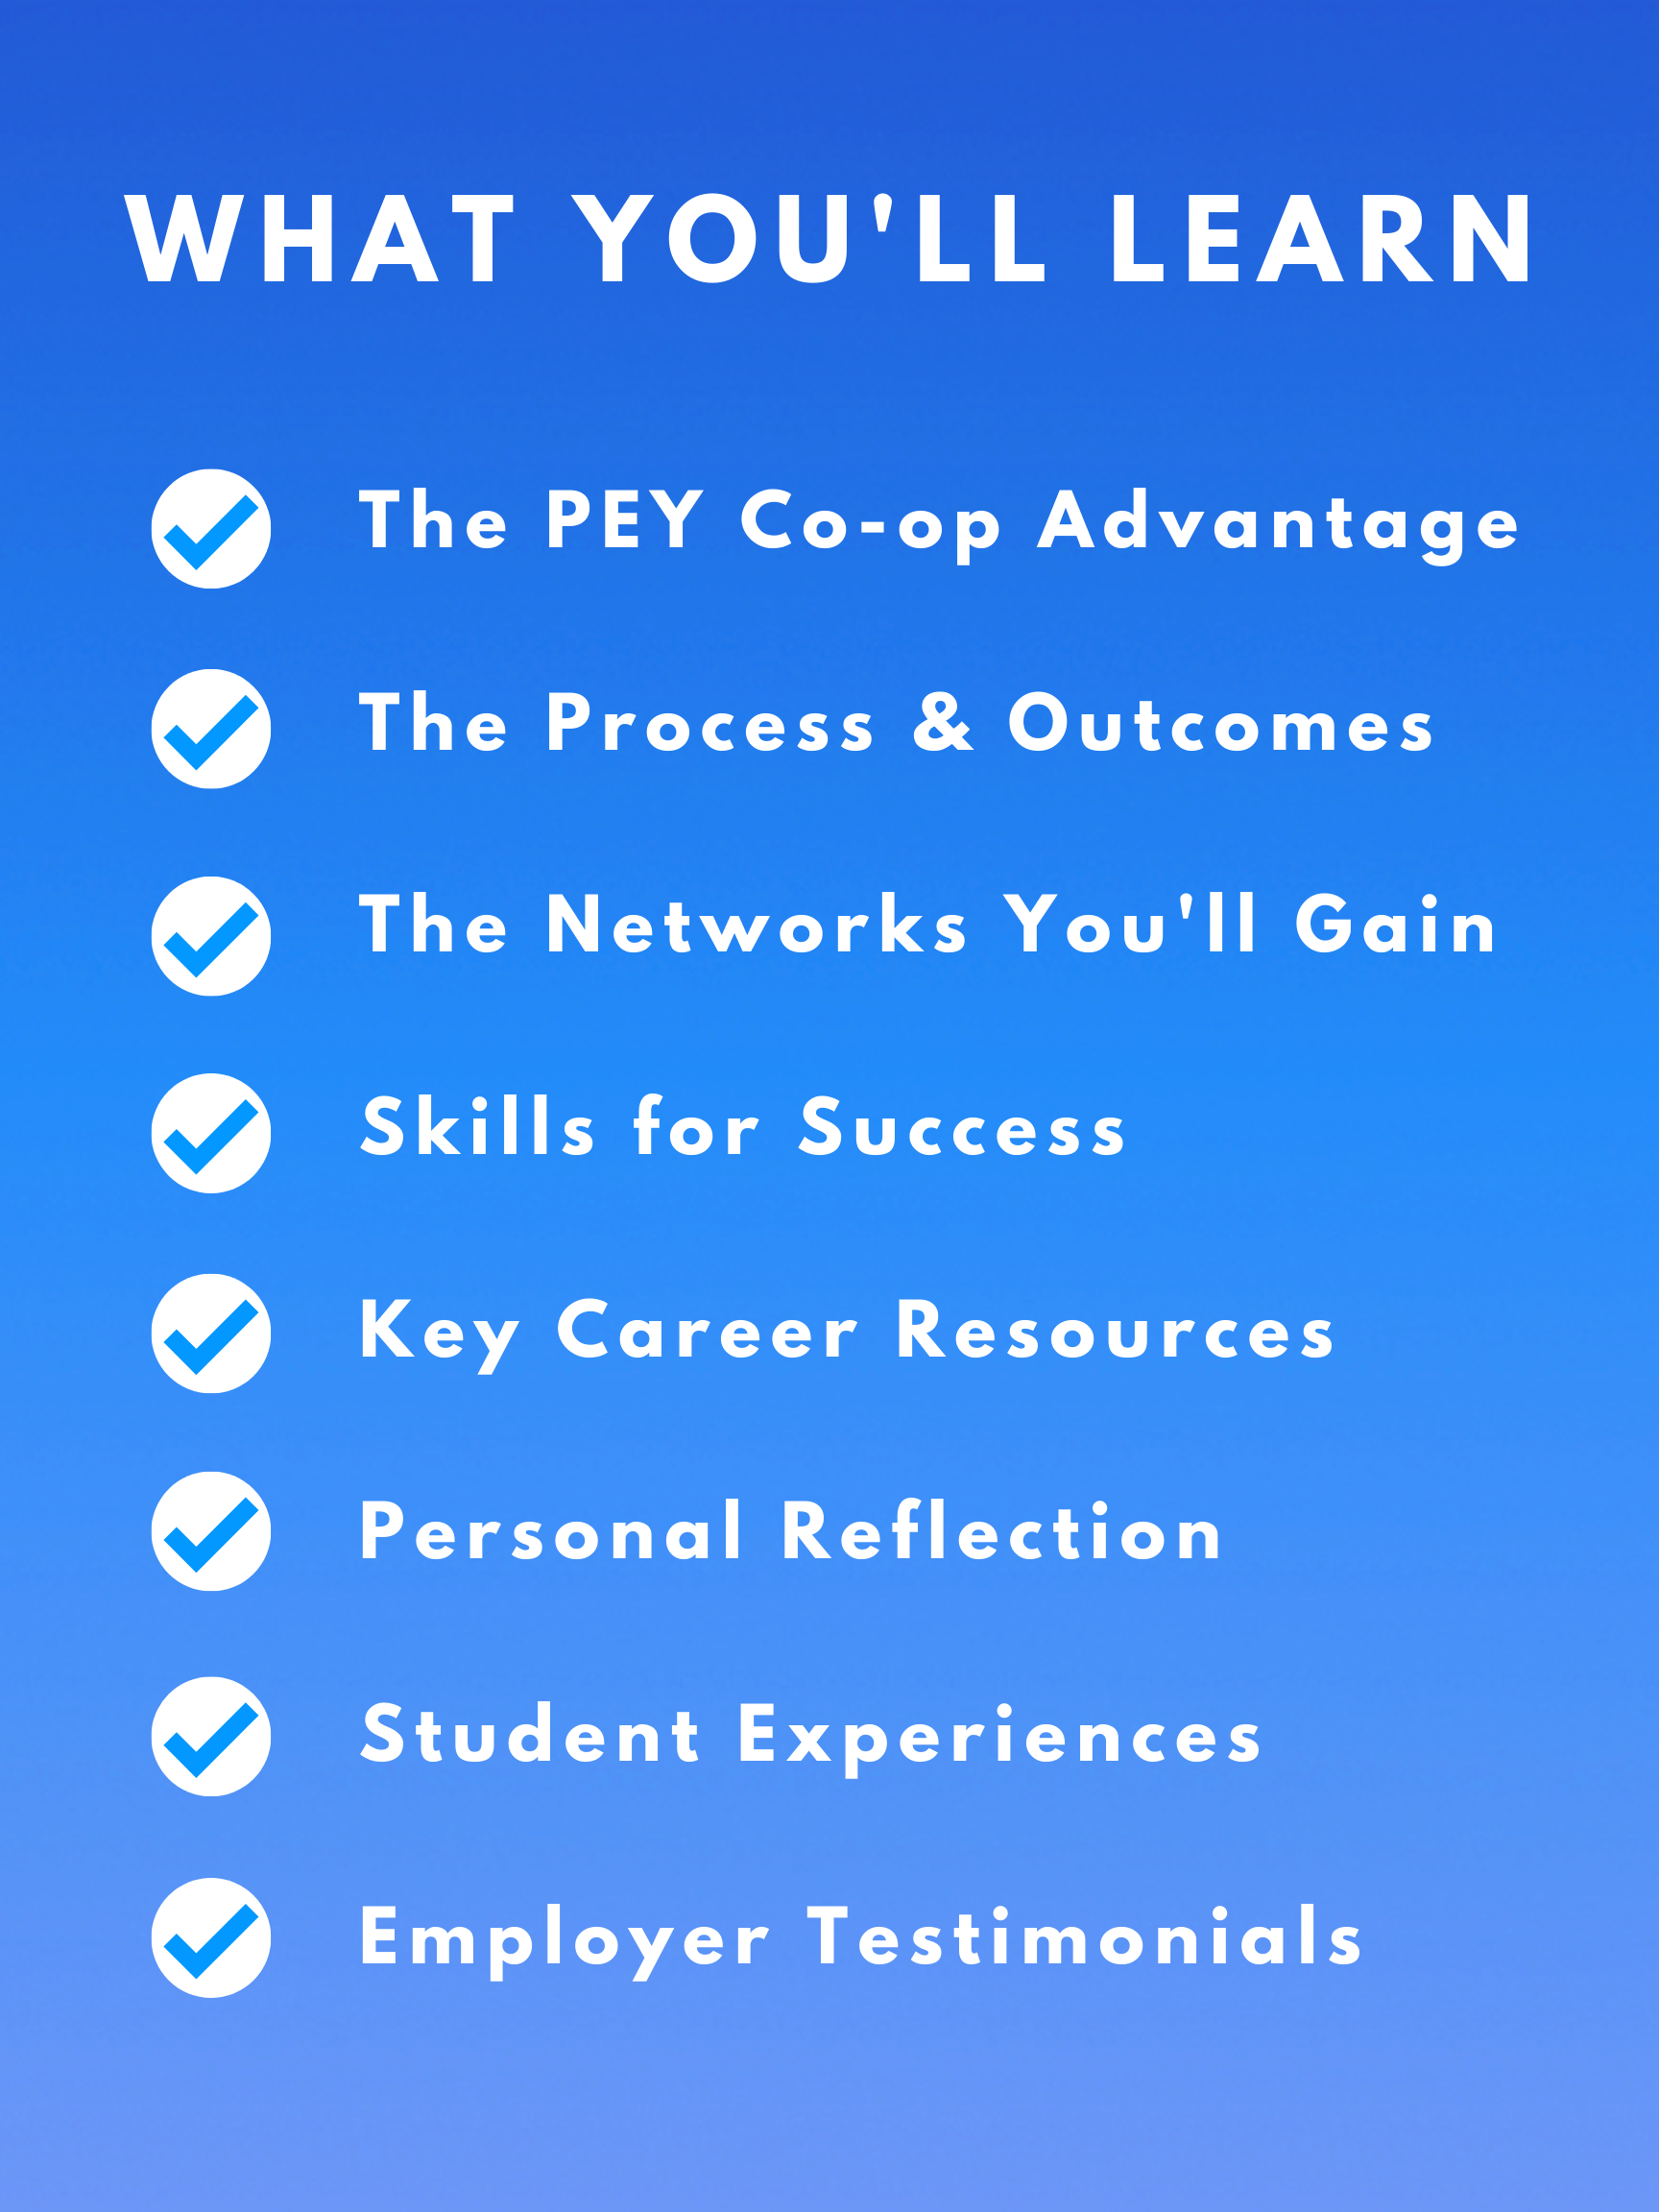 What you'll learn: The PEY Co-op advantage, The Process & Outcomes, The Networks You'll Gain, Skills for Success, Key Career Resources, Personal Reflection, Student Experiences, Employer Testimonials